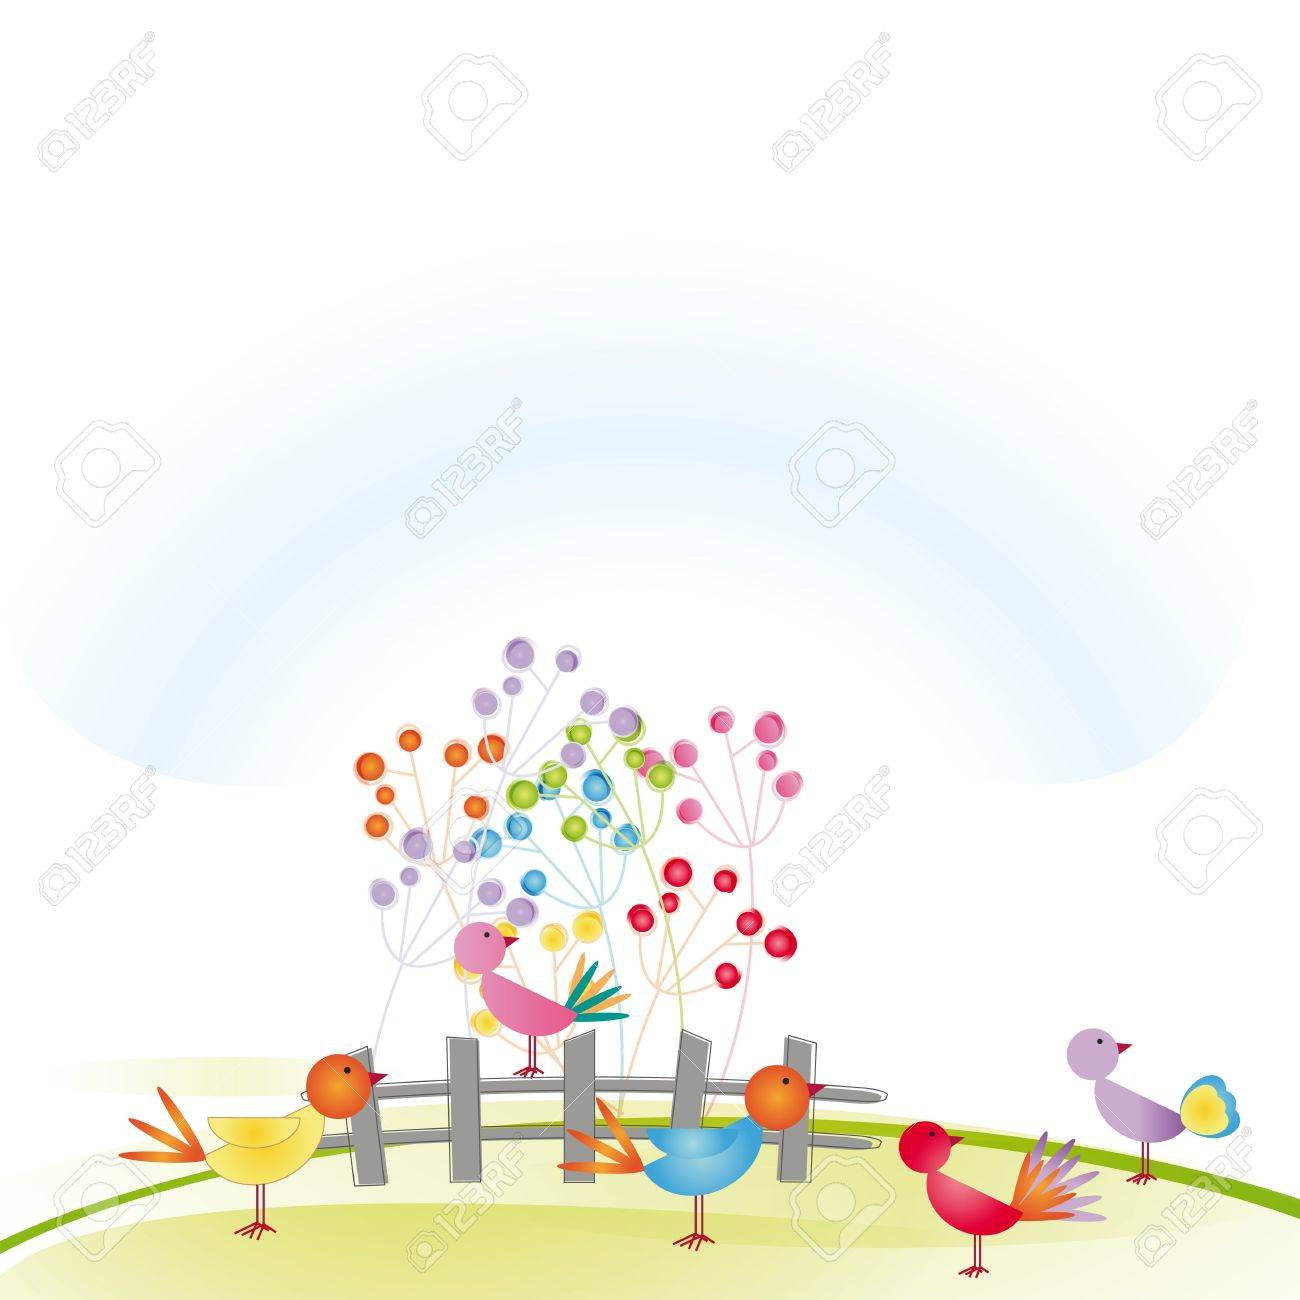 Colorful and cute birds on grass and fence Stock Vector - 16505165